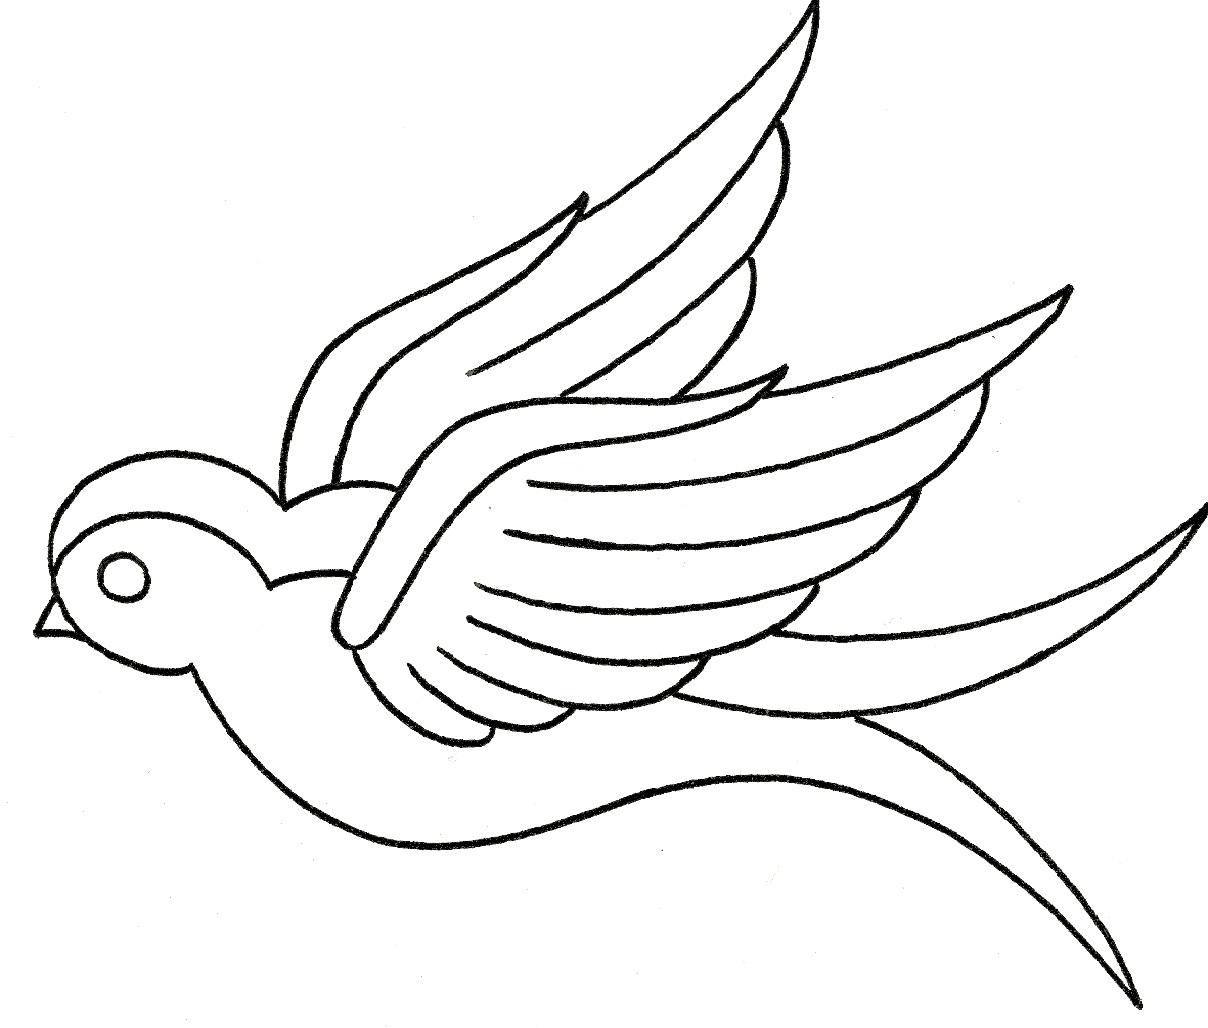 With Sympathy Rubber St  7117 as well Rubber St  Clip Art additionally Helicopter Clipart Black And White also Decision Maker 24636386 in addition Flying Sparrow Outline. on rubber clip